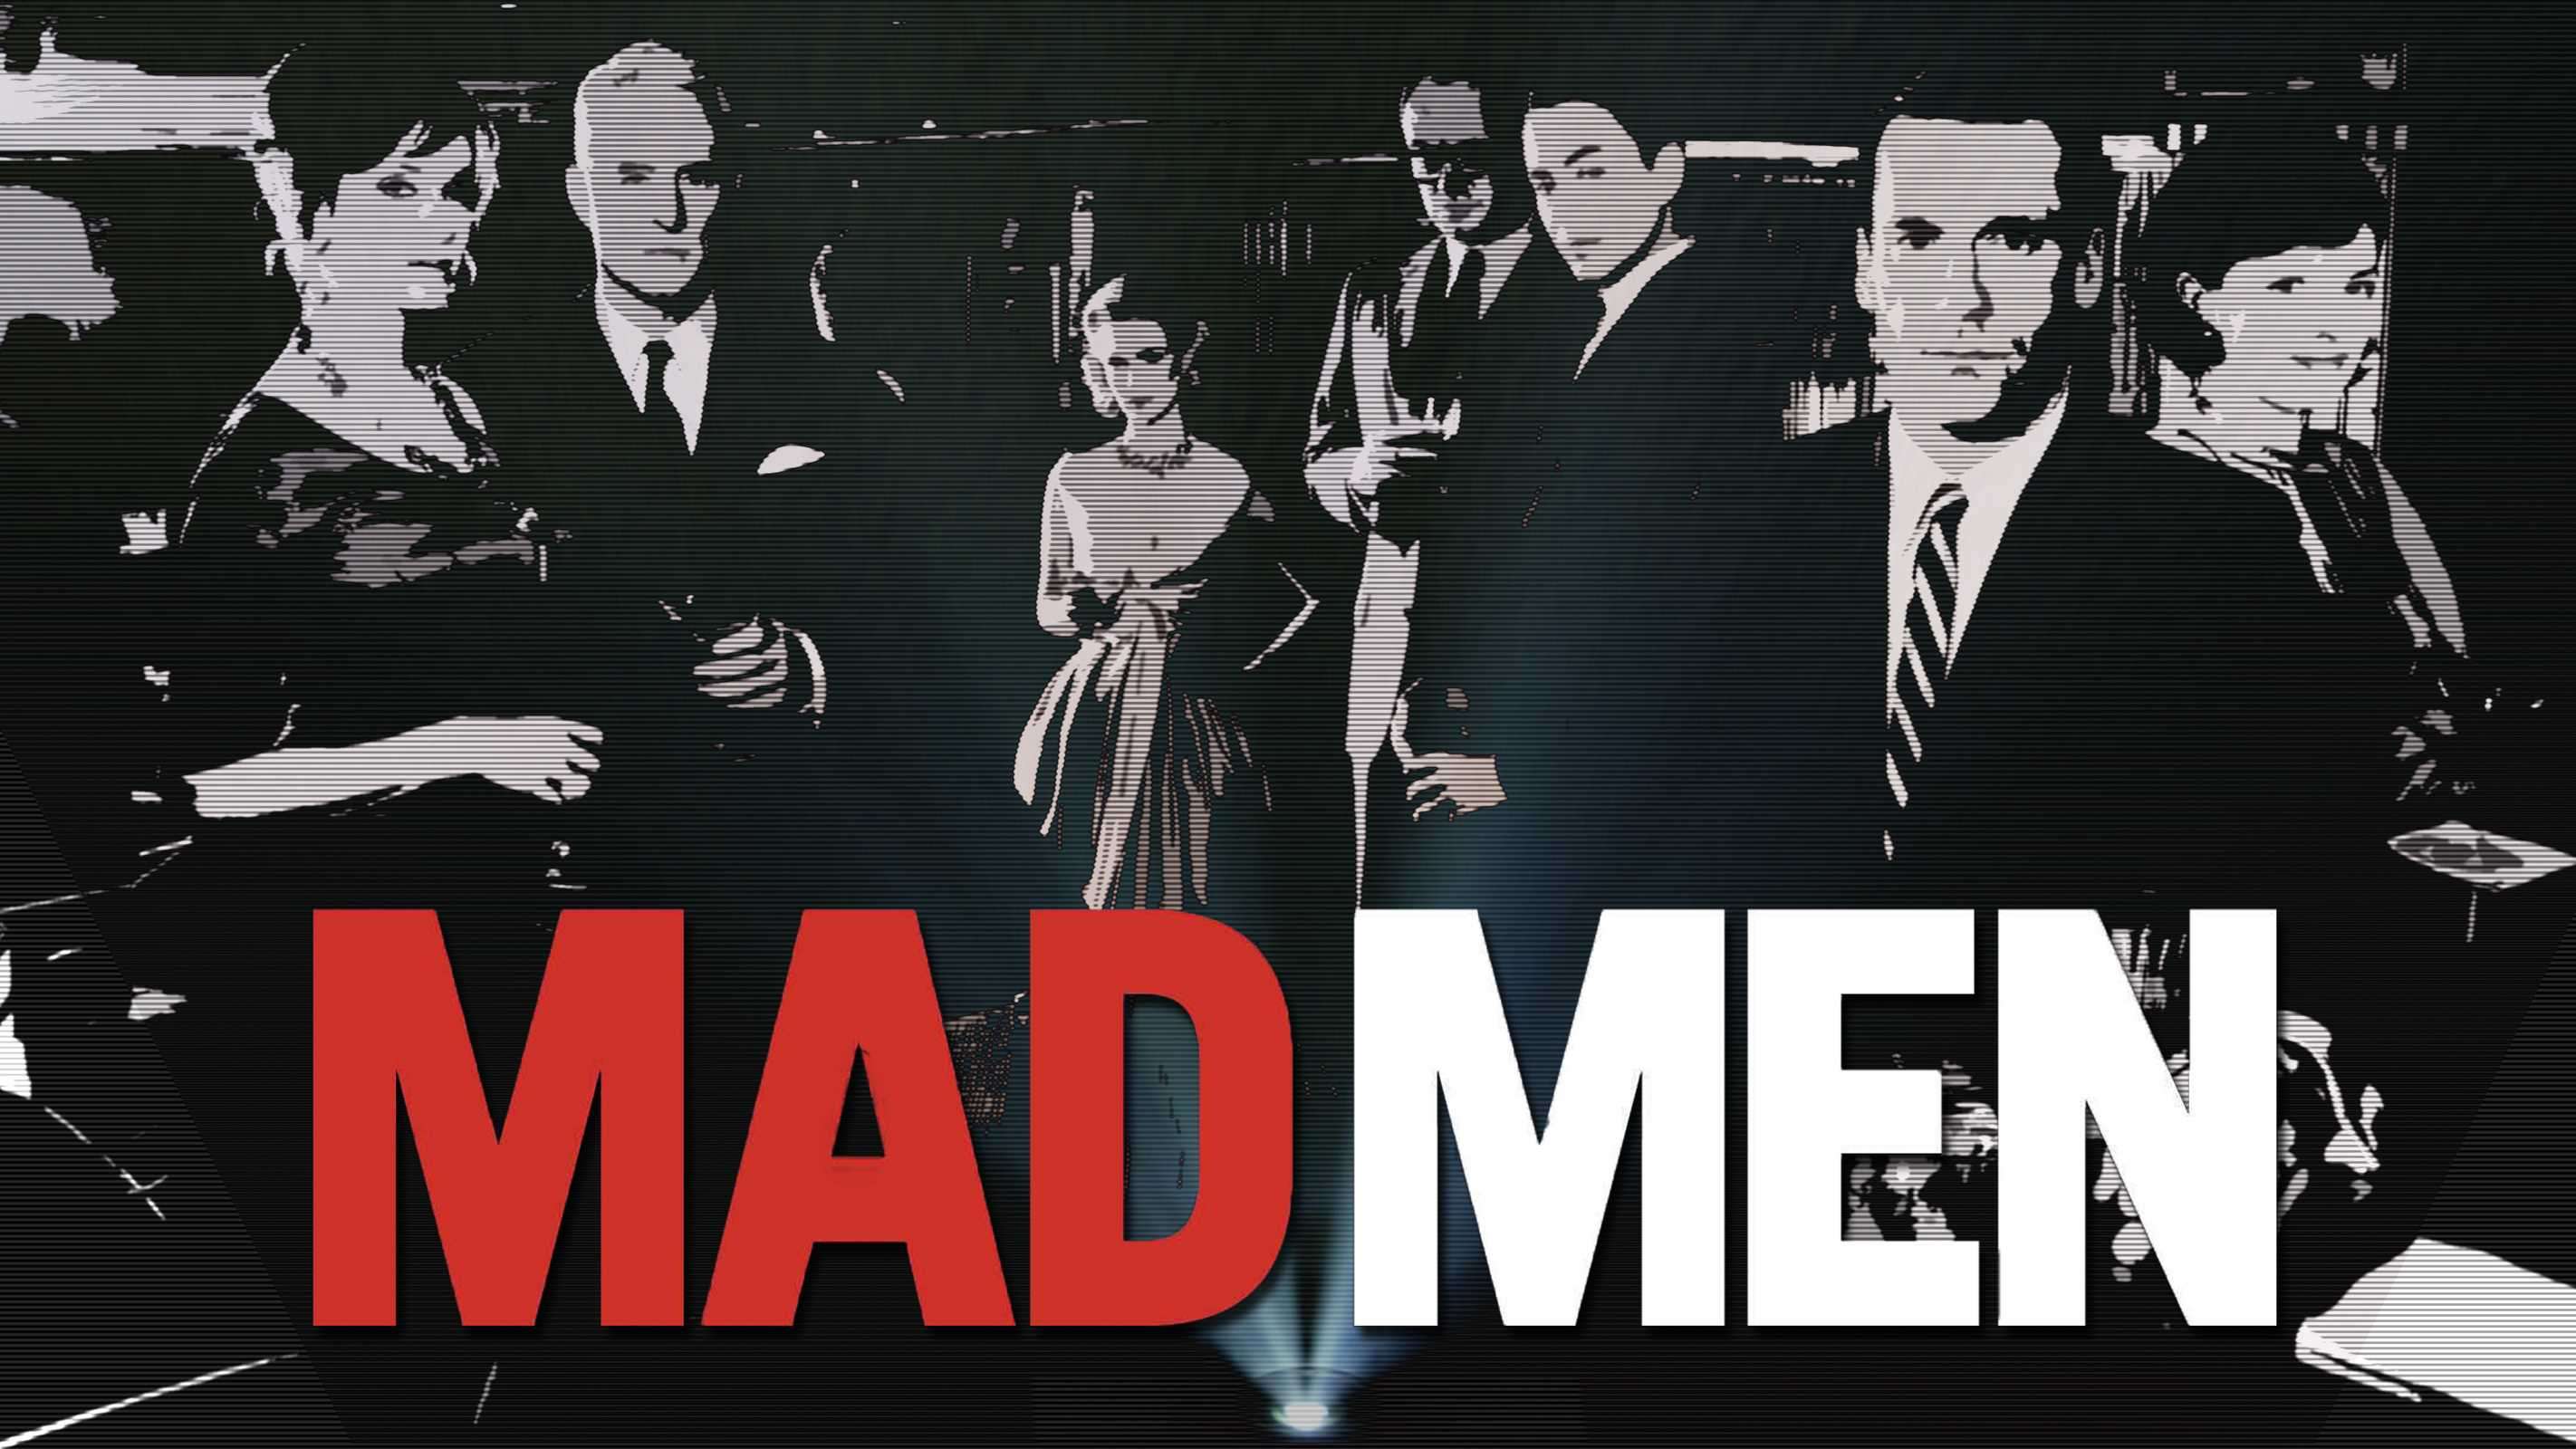 Mad Men Characters Who Do You Identify With Netivist